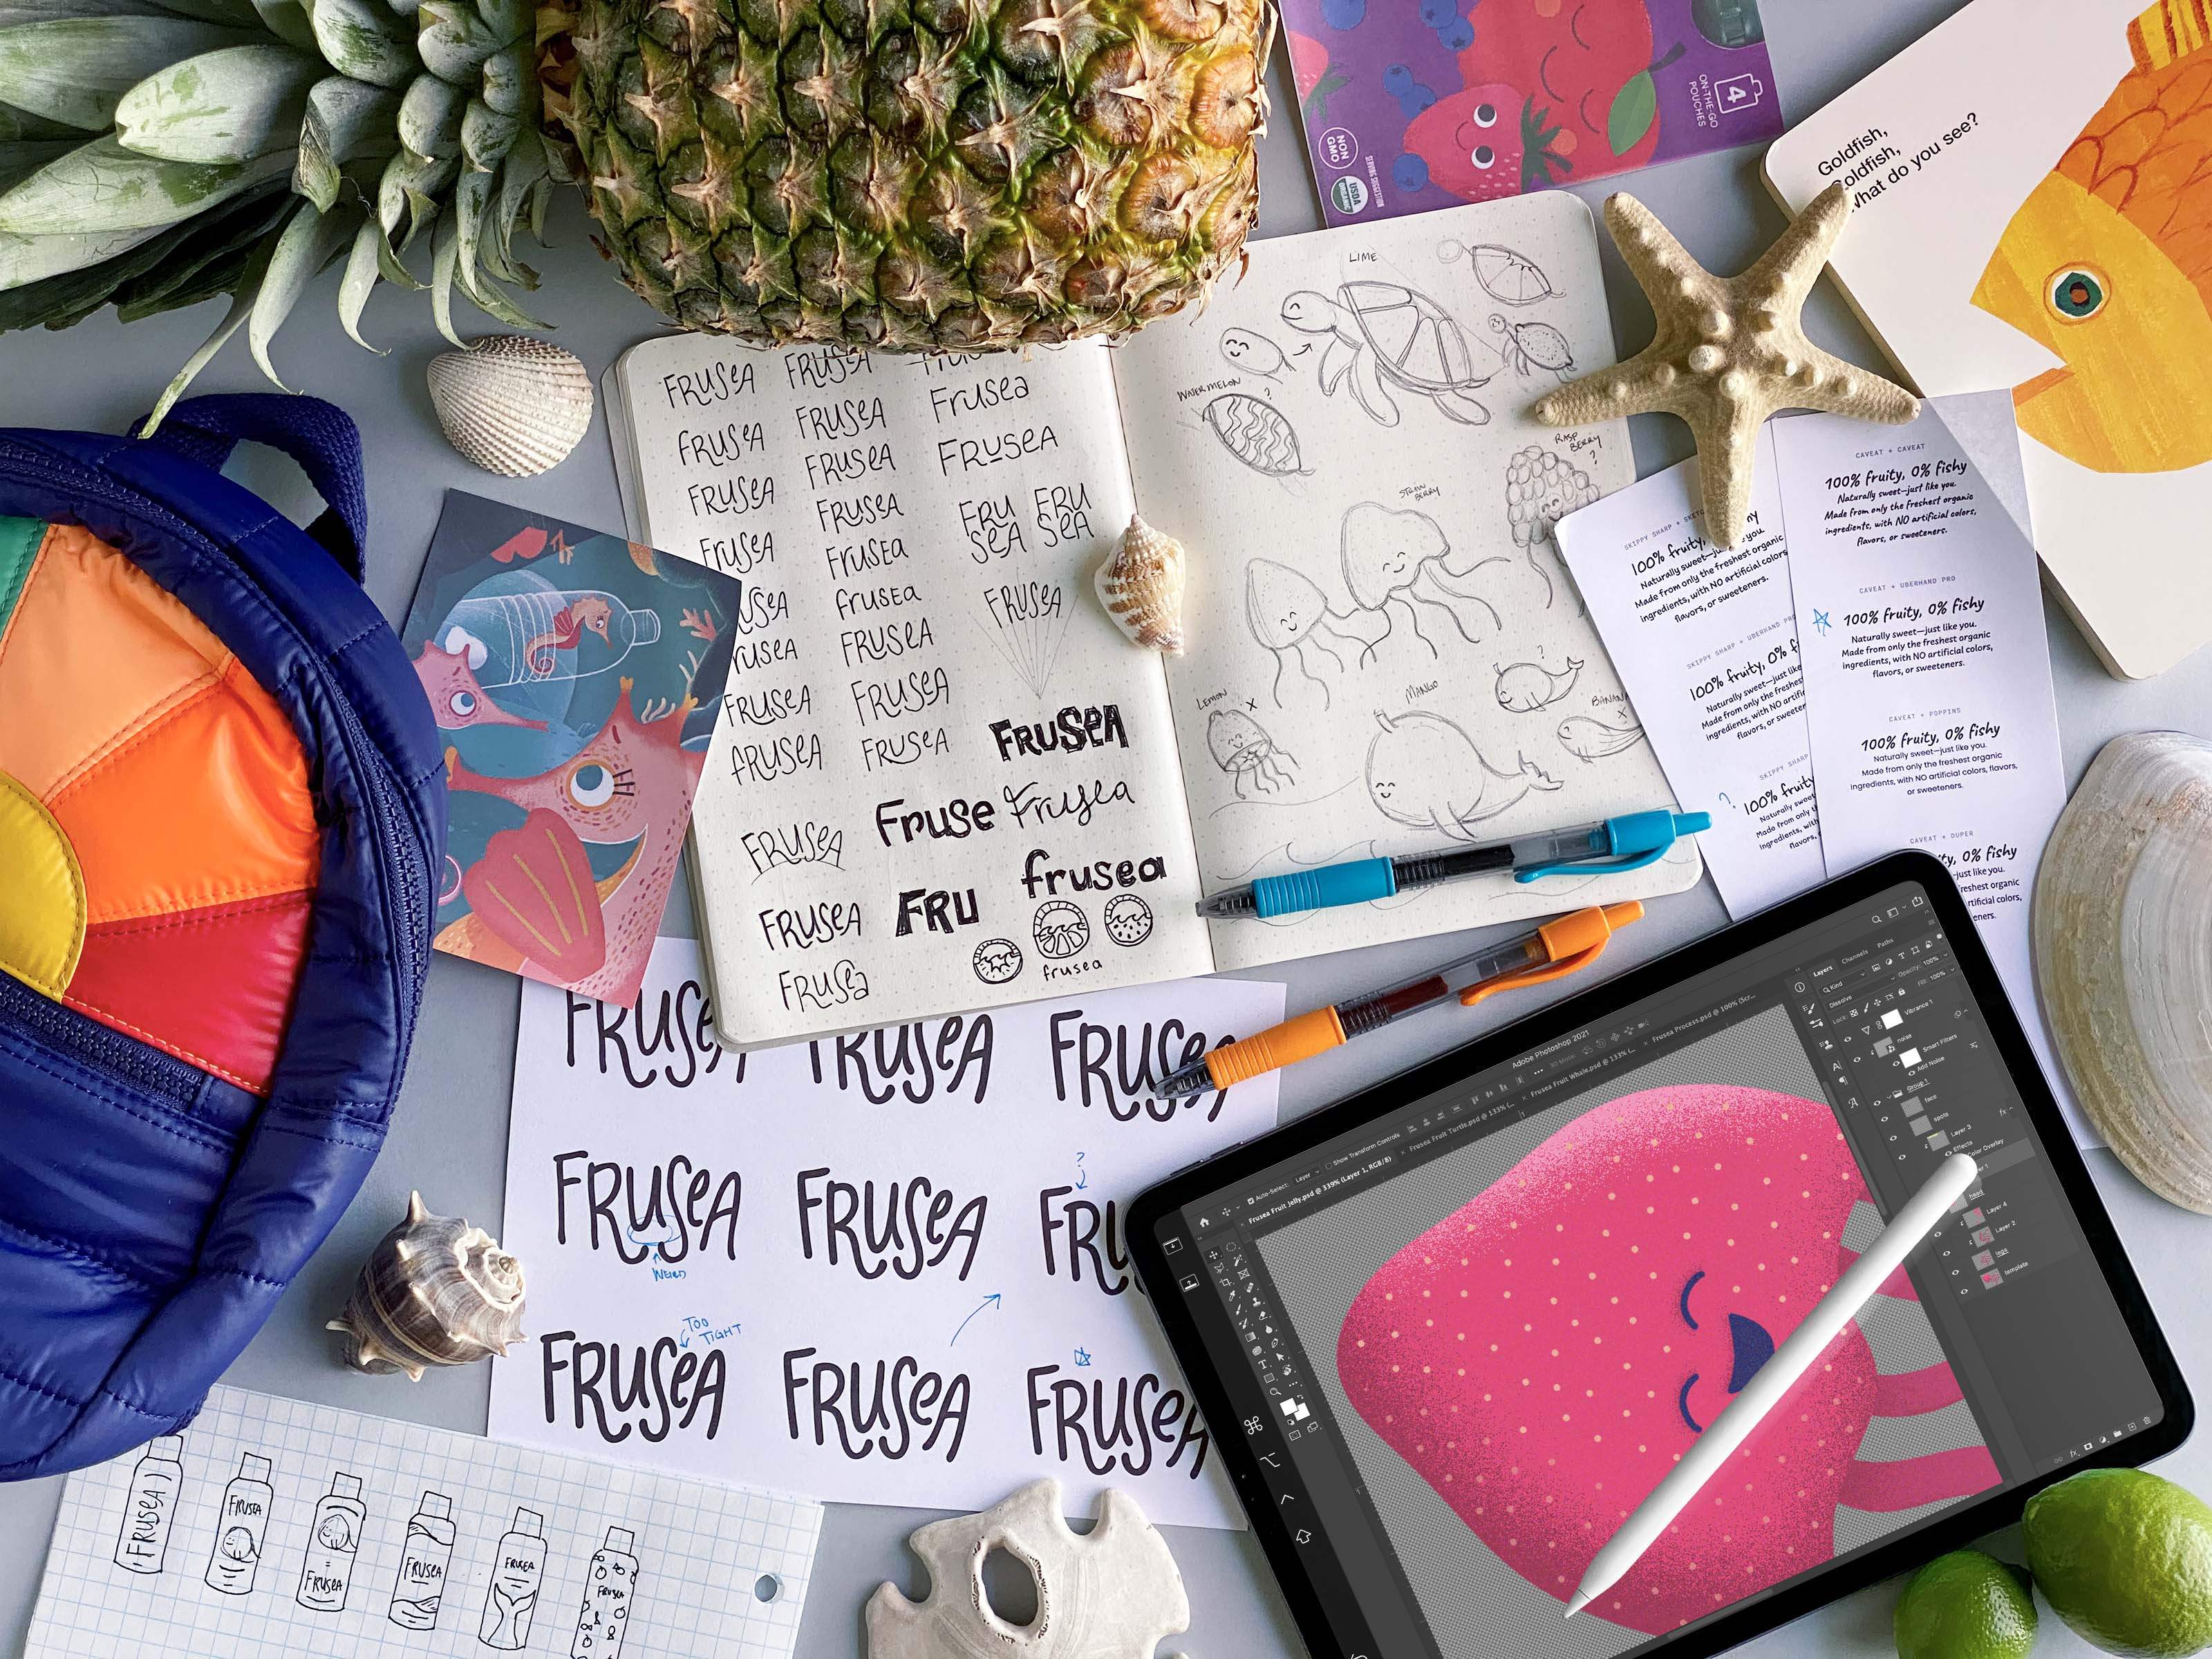 A desk covered in sketchbooks, fruits, and inspiration photos, showing the design process for the project.